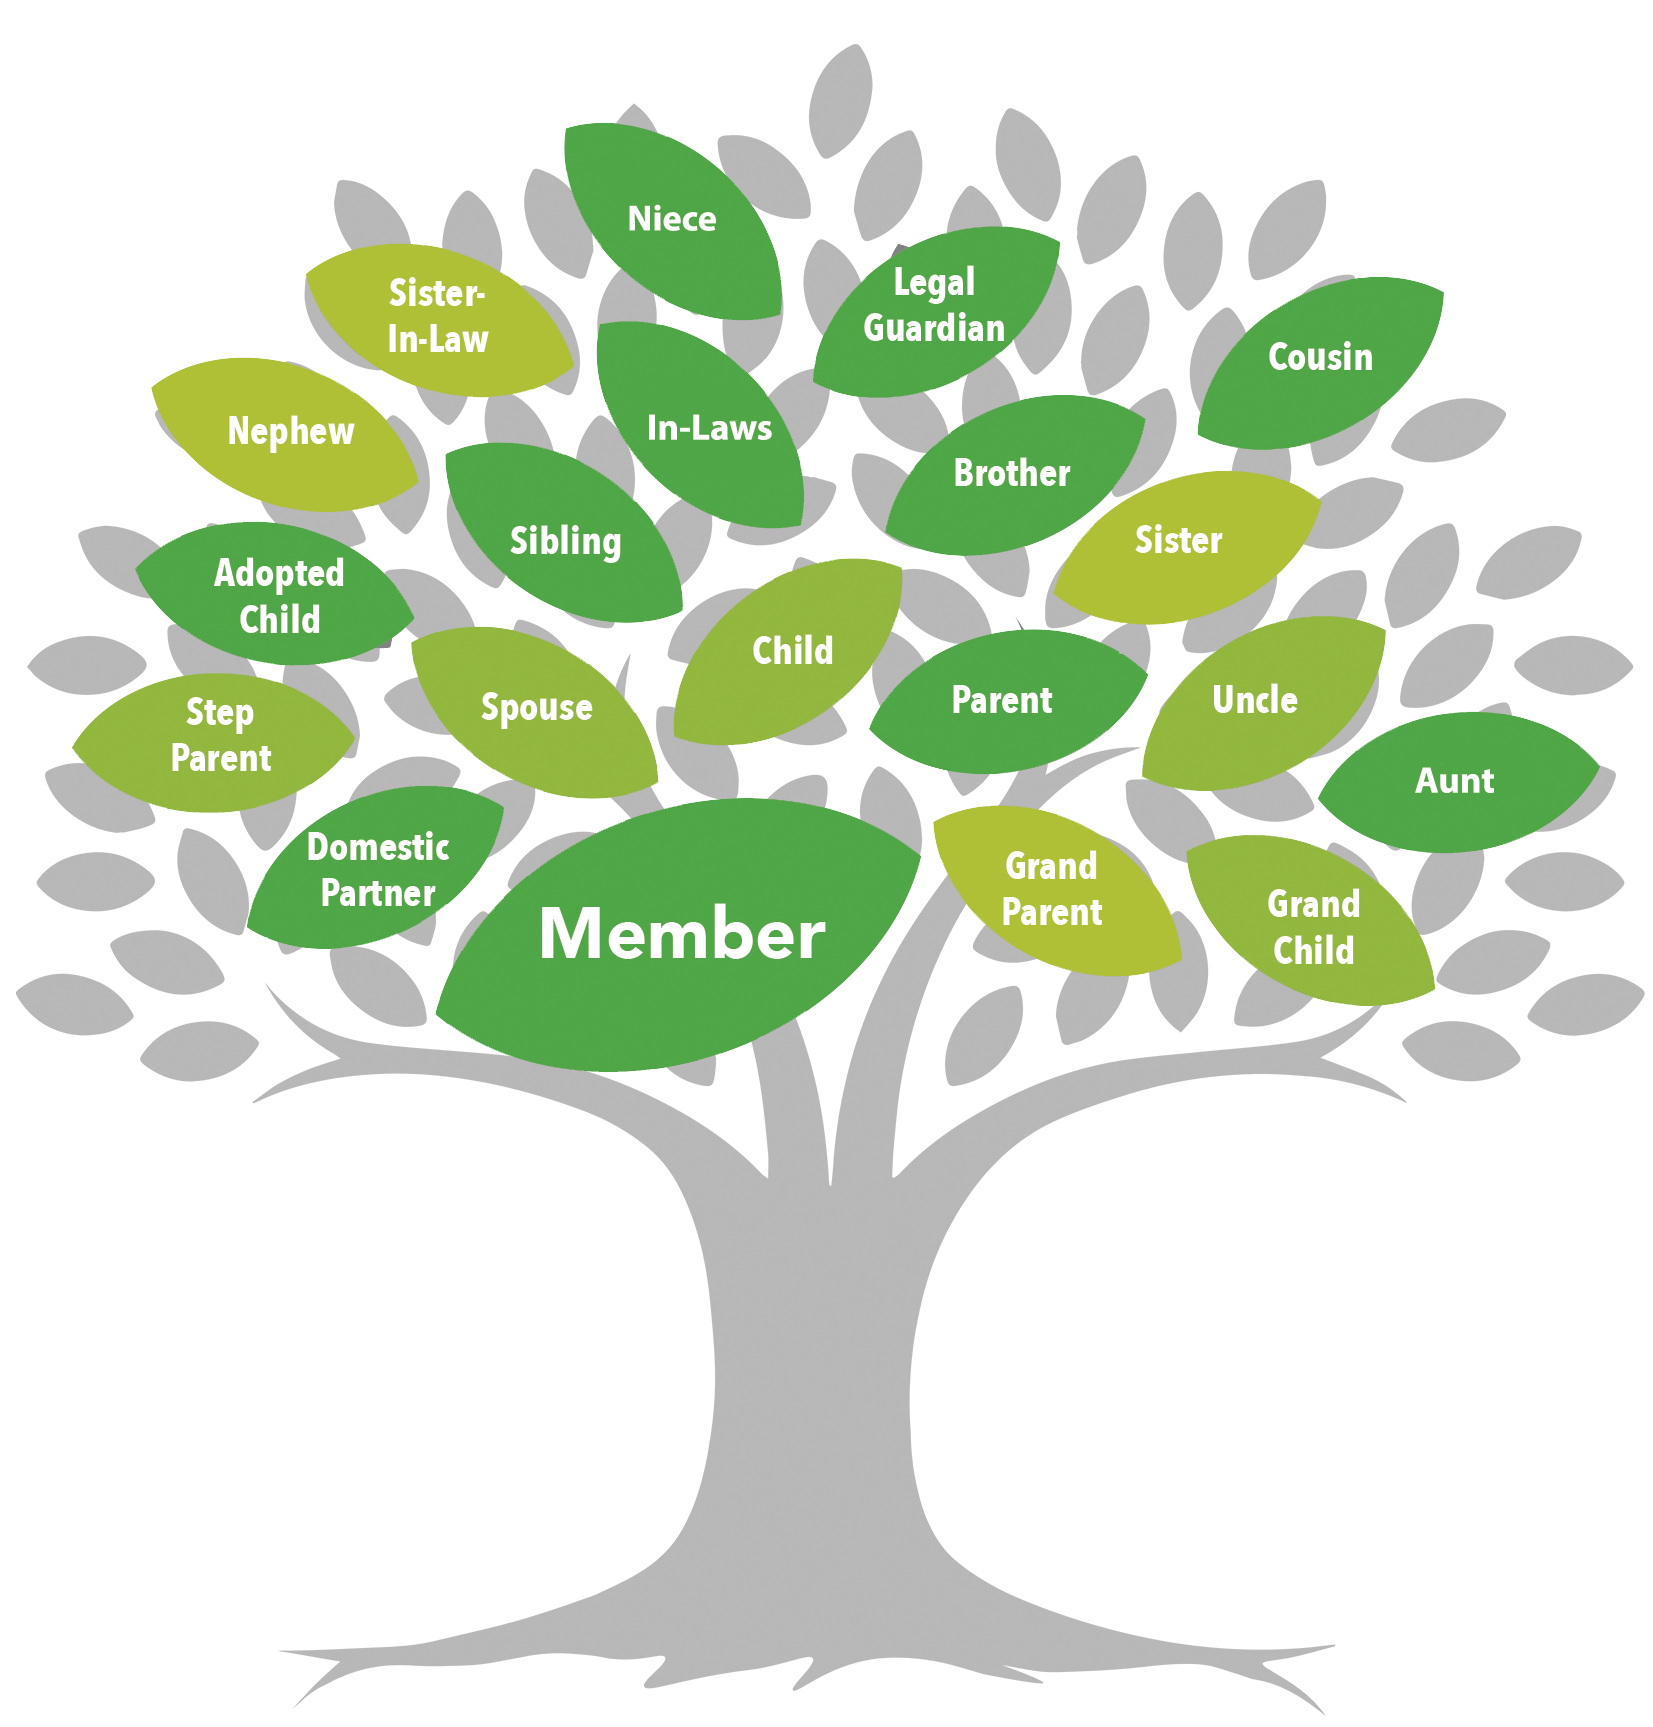 Veritas FCU Membership Family Tree